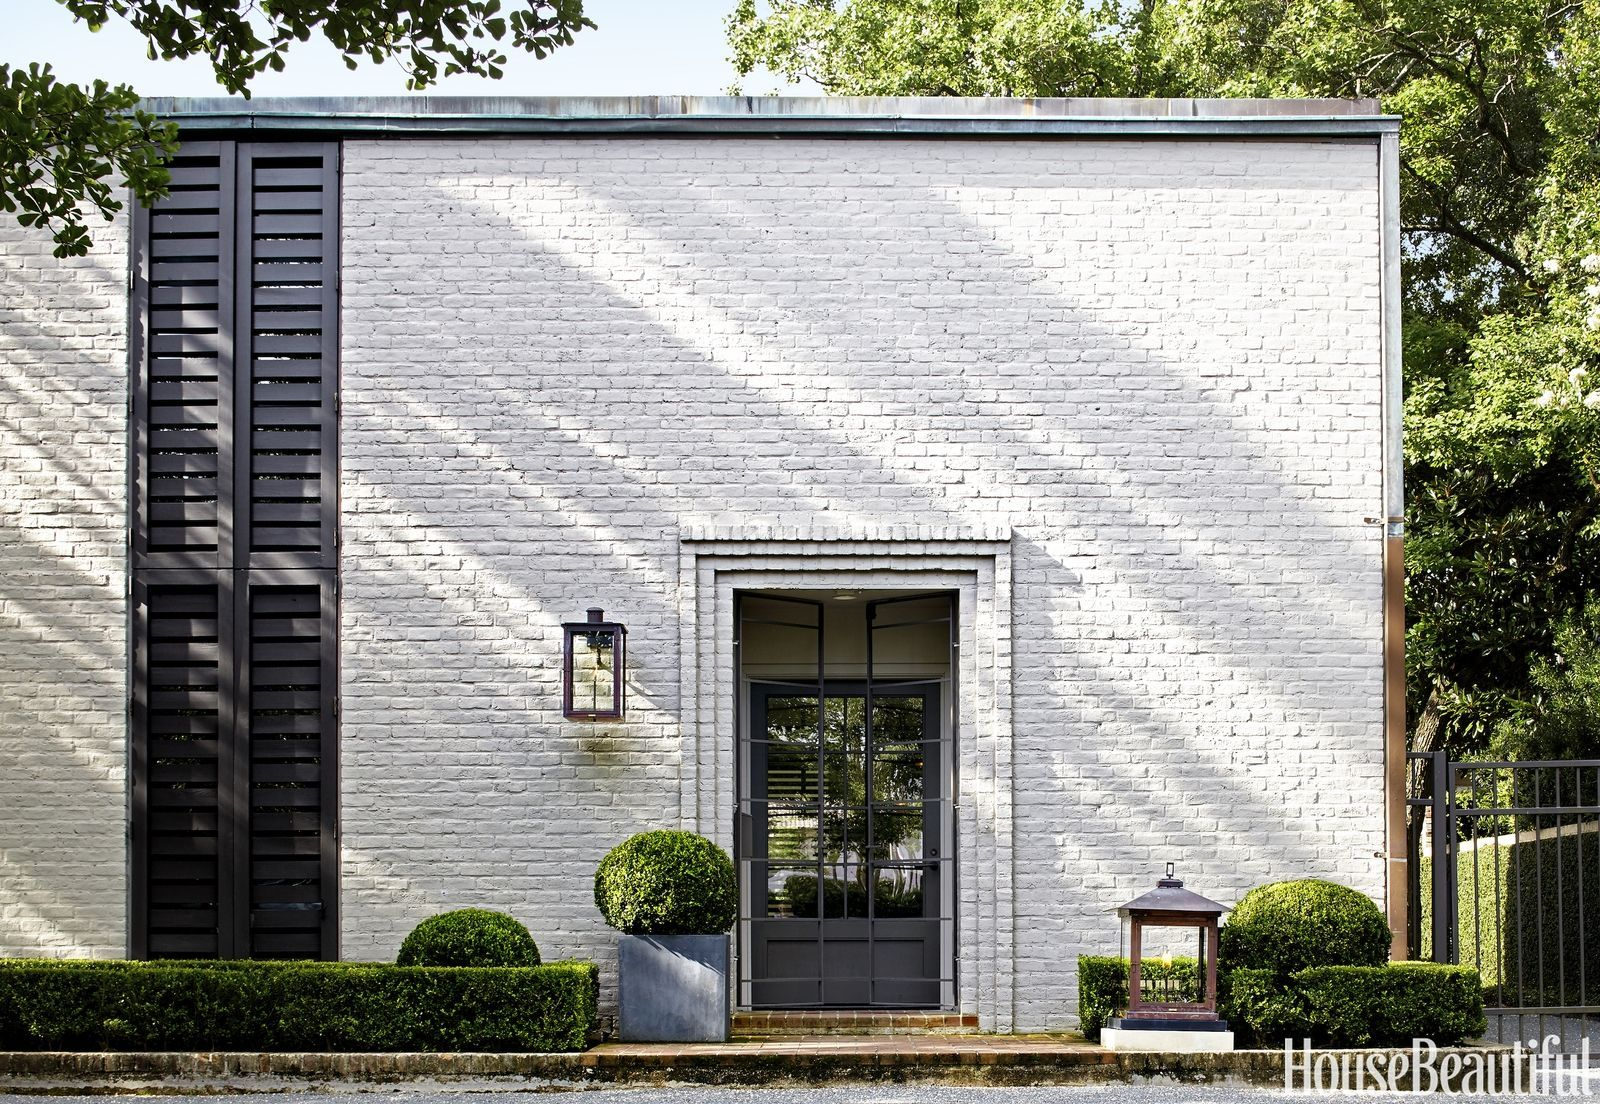 45 of the Most Stunning House Exteriors Ever | Bricks, Outdoor ideas ...